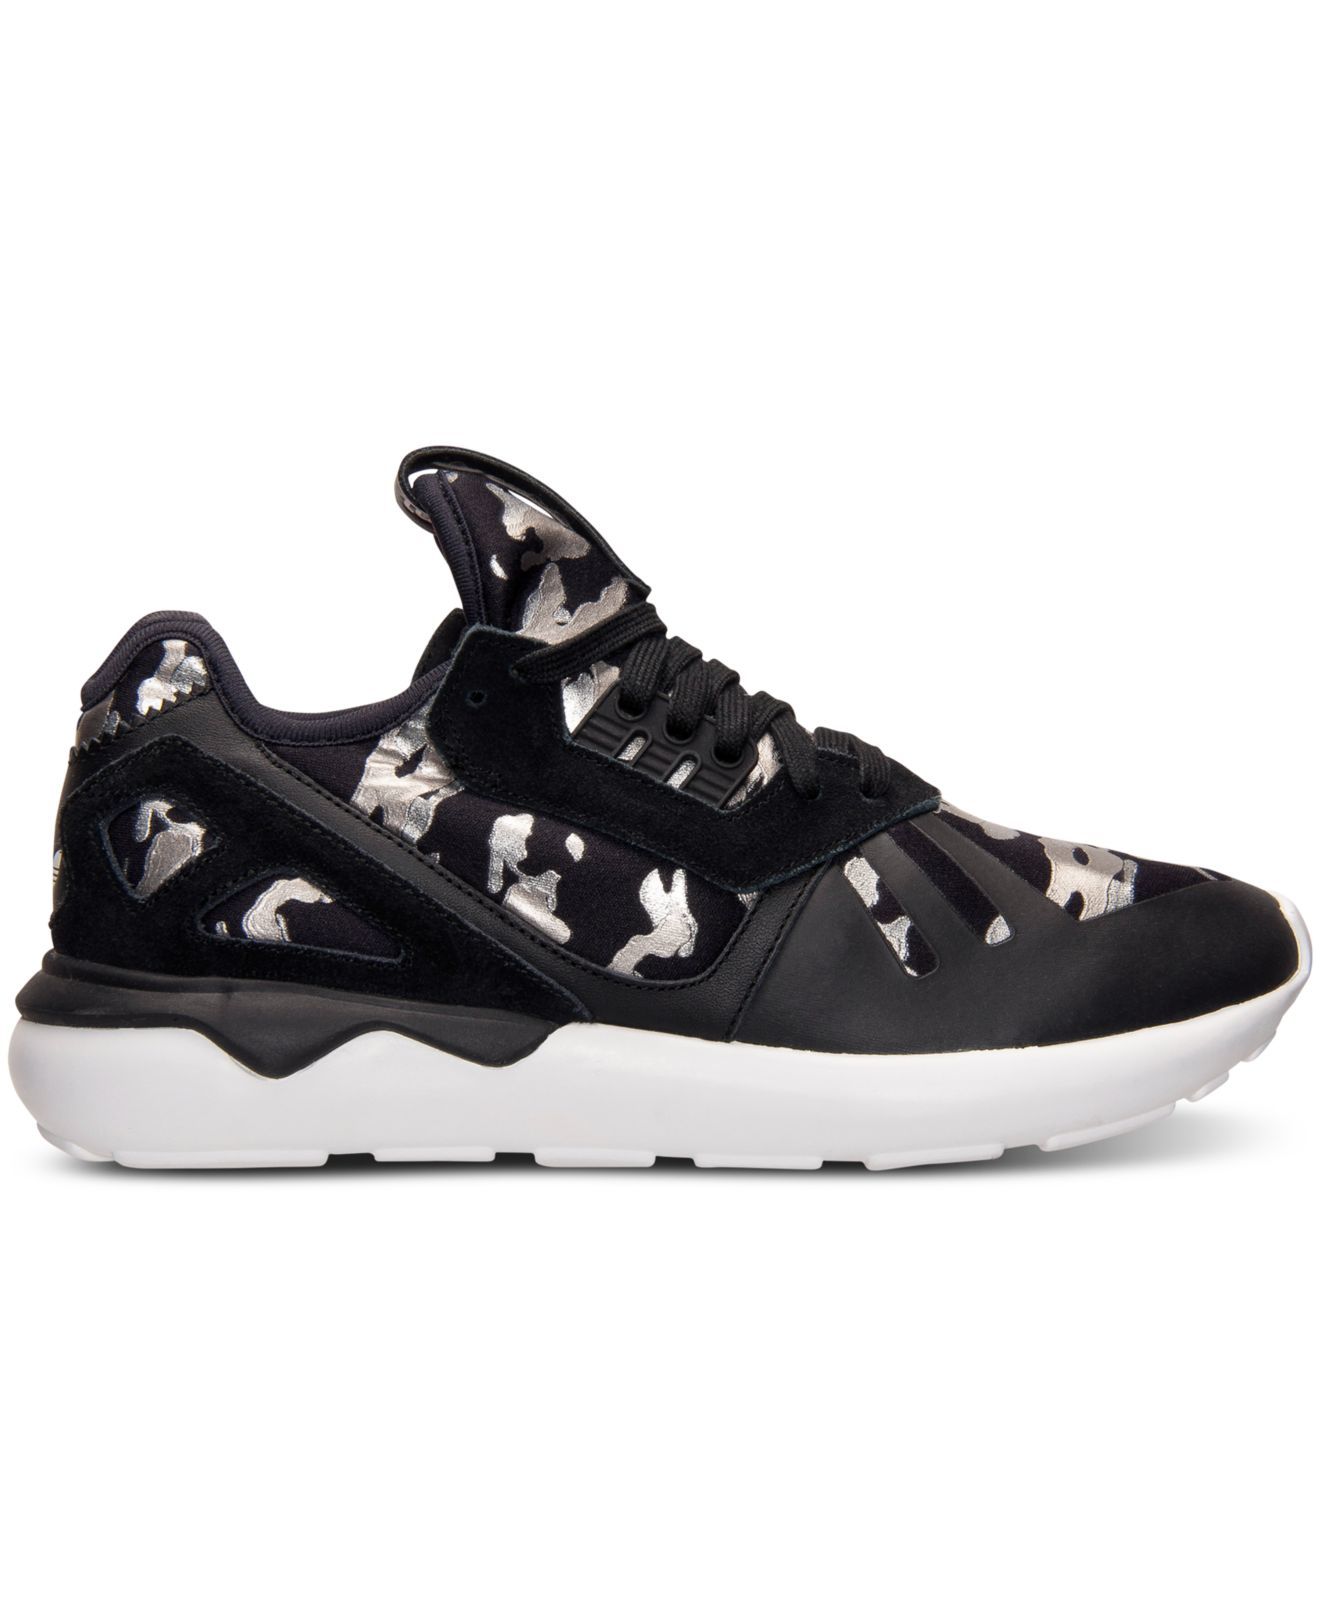 Adidas originals Women's Originals Tubular Runner Casual ...